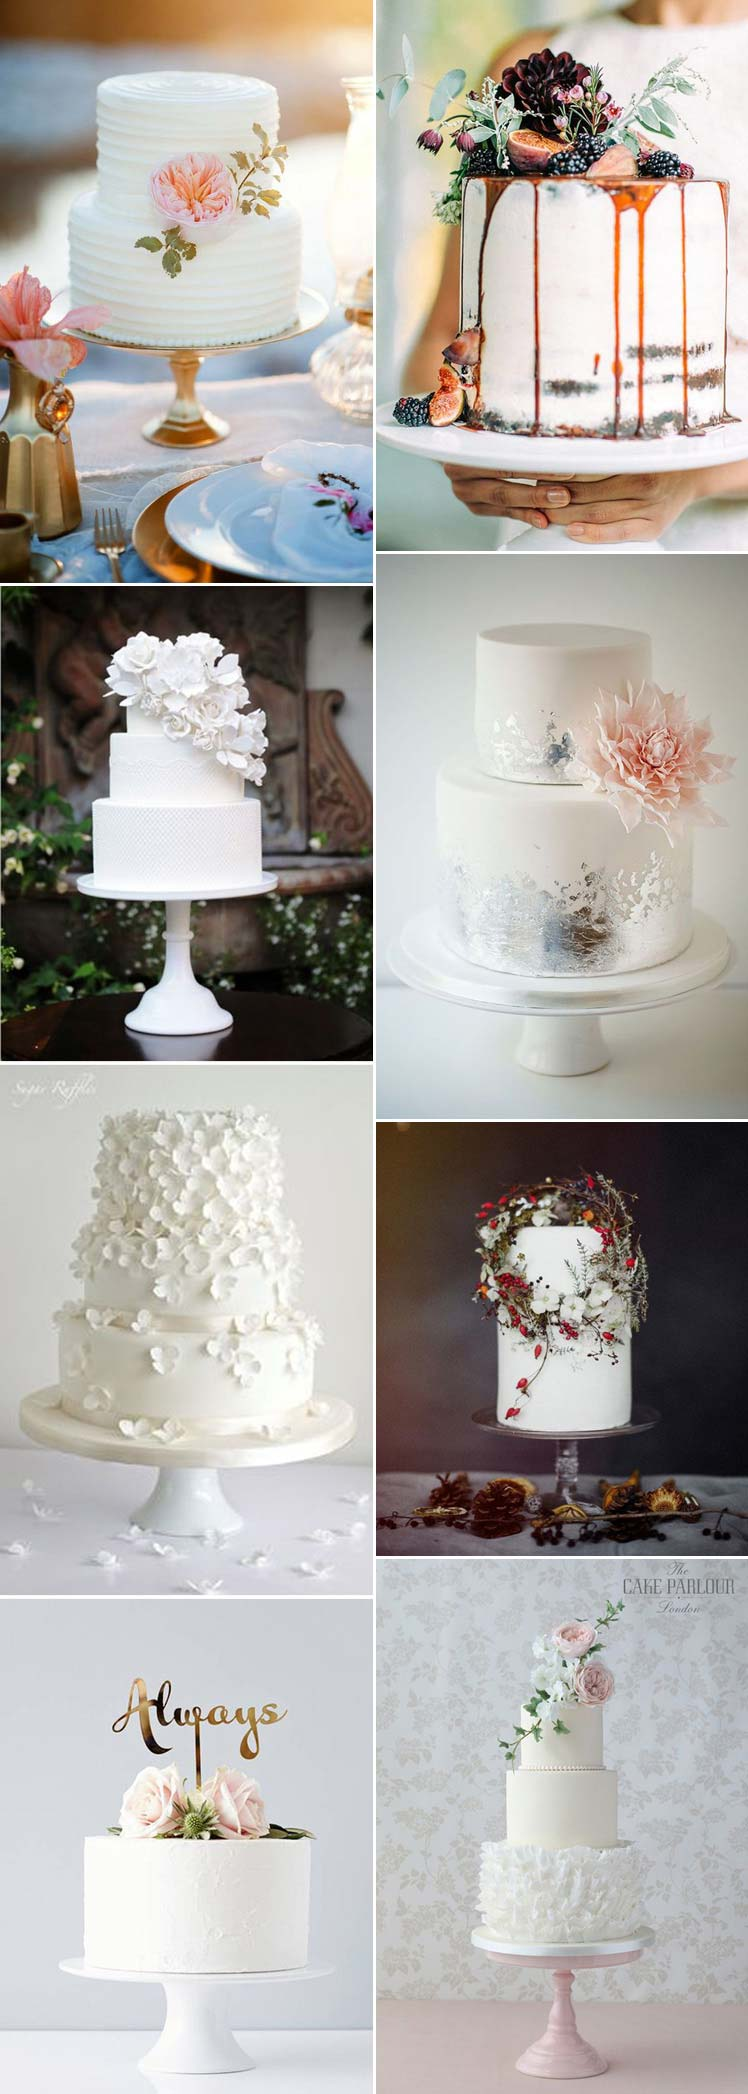 Stunning non tradition white wedding cakes inspiration